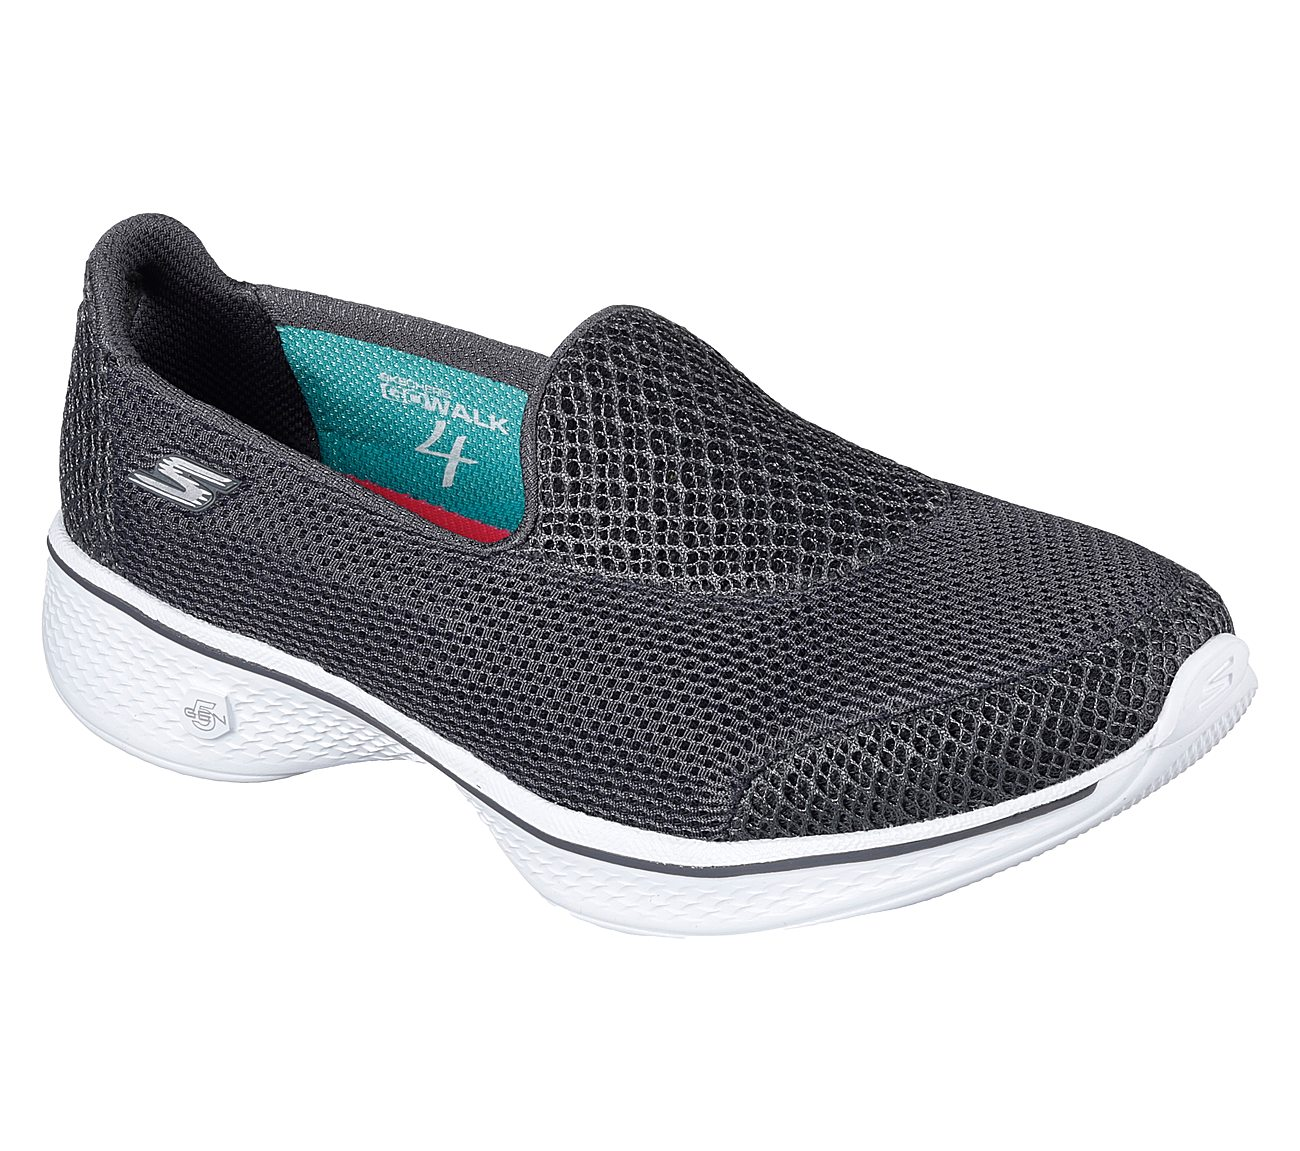 Skechers GOwalk 4 - Propel